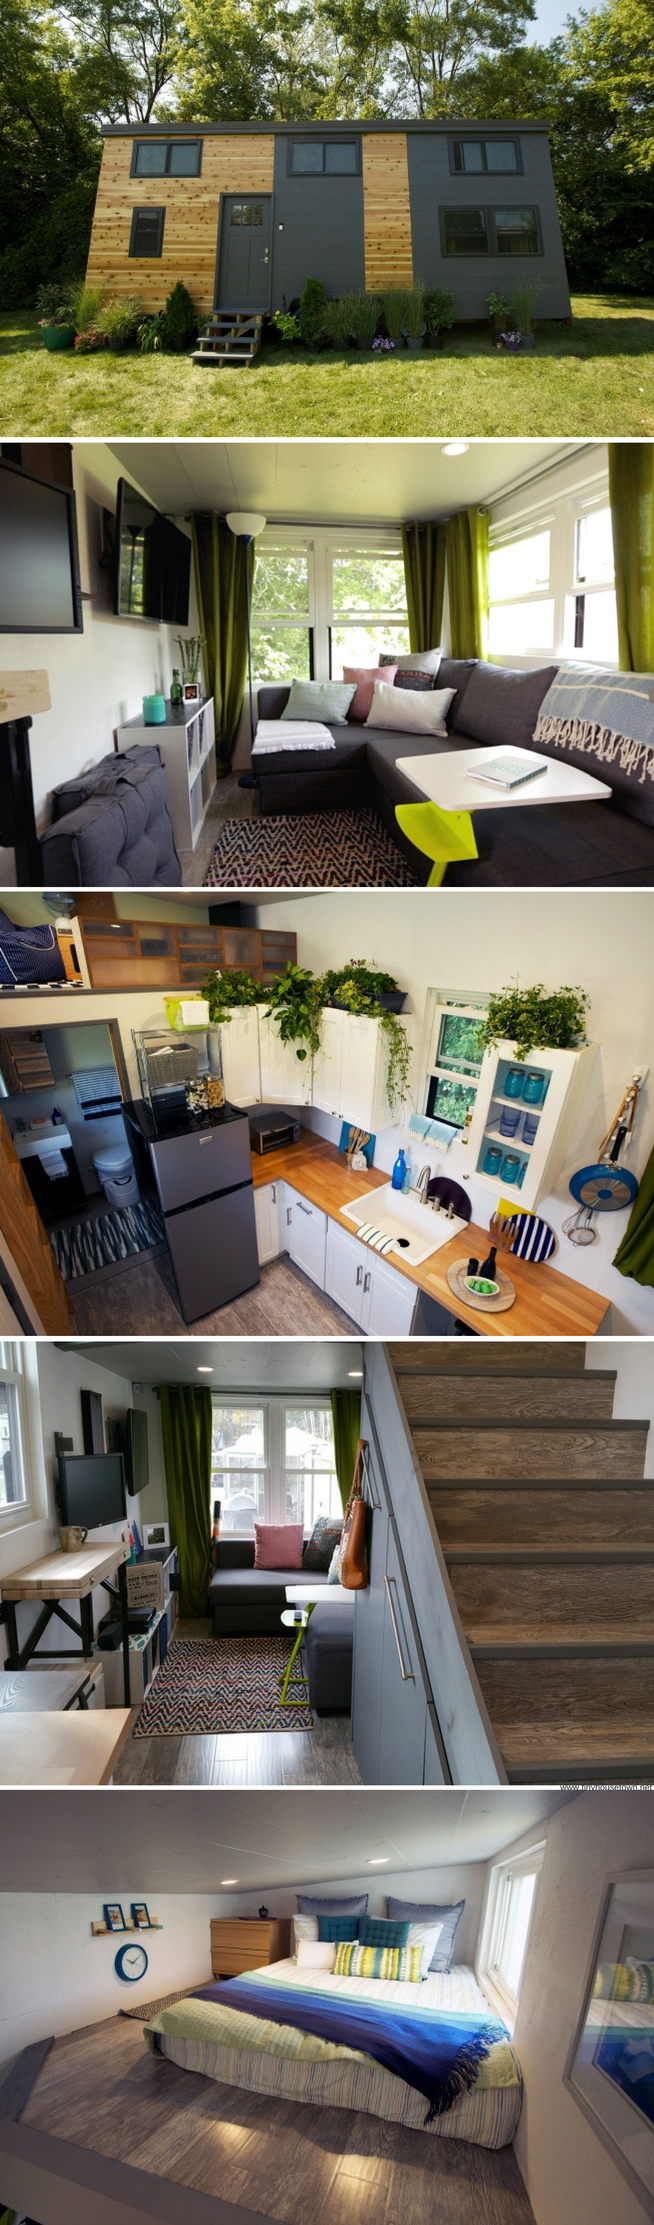 The Smart House a 303 sq ft